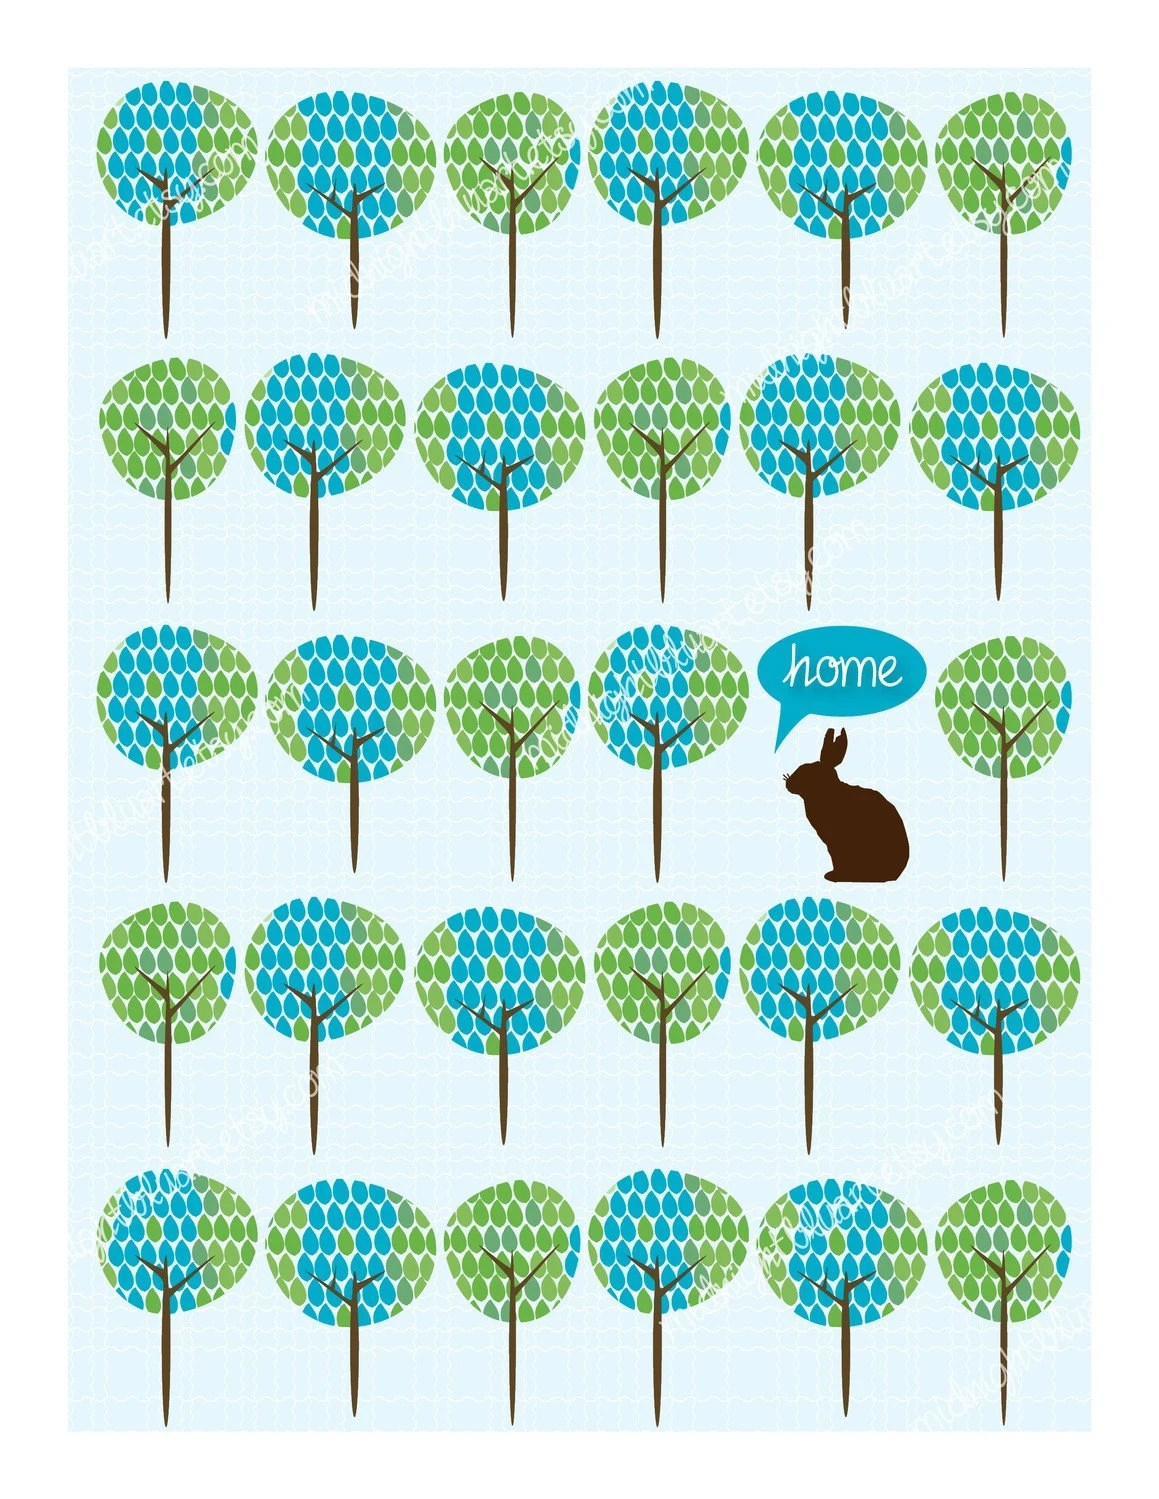 Home Among Trees - Rabbit, Deer or Bird - Digital Download - 7.5 x 10 inches Image